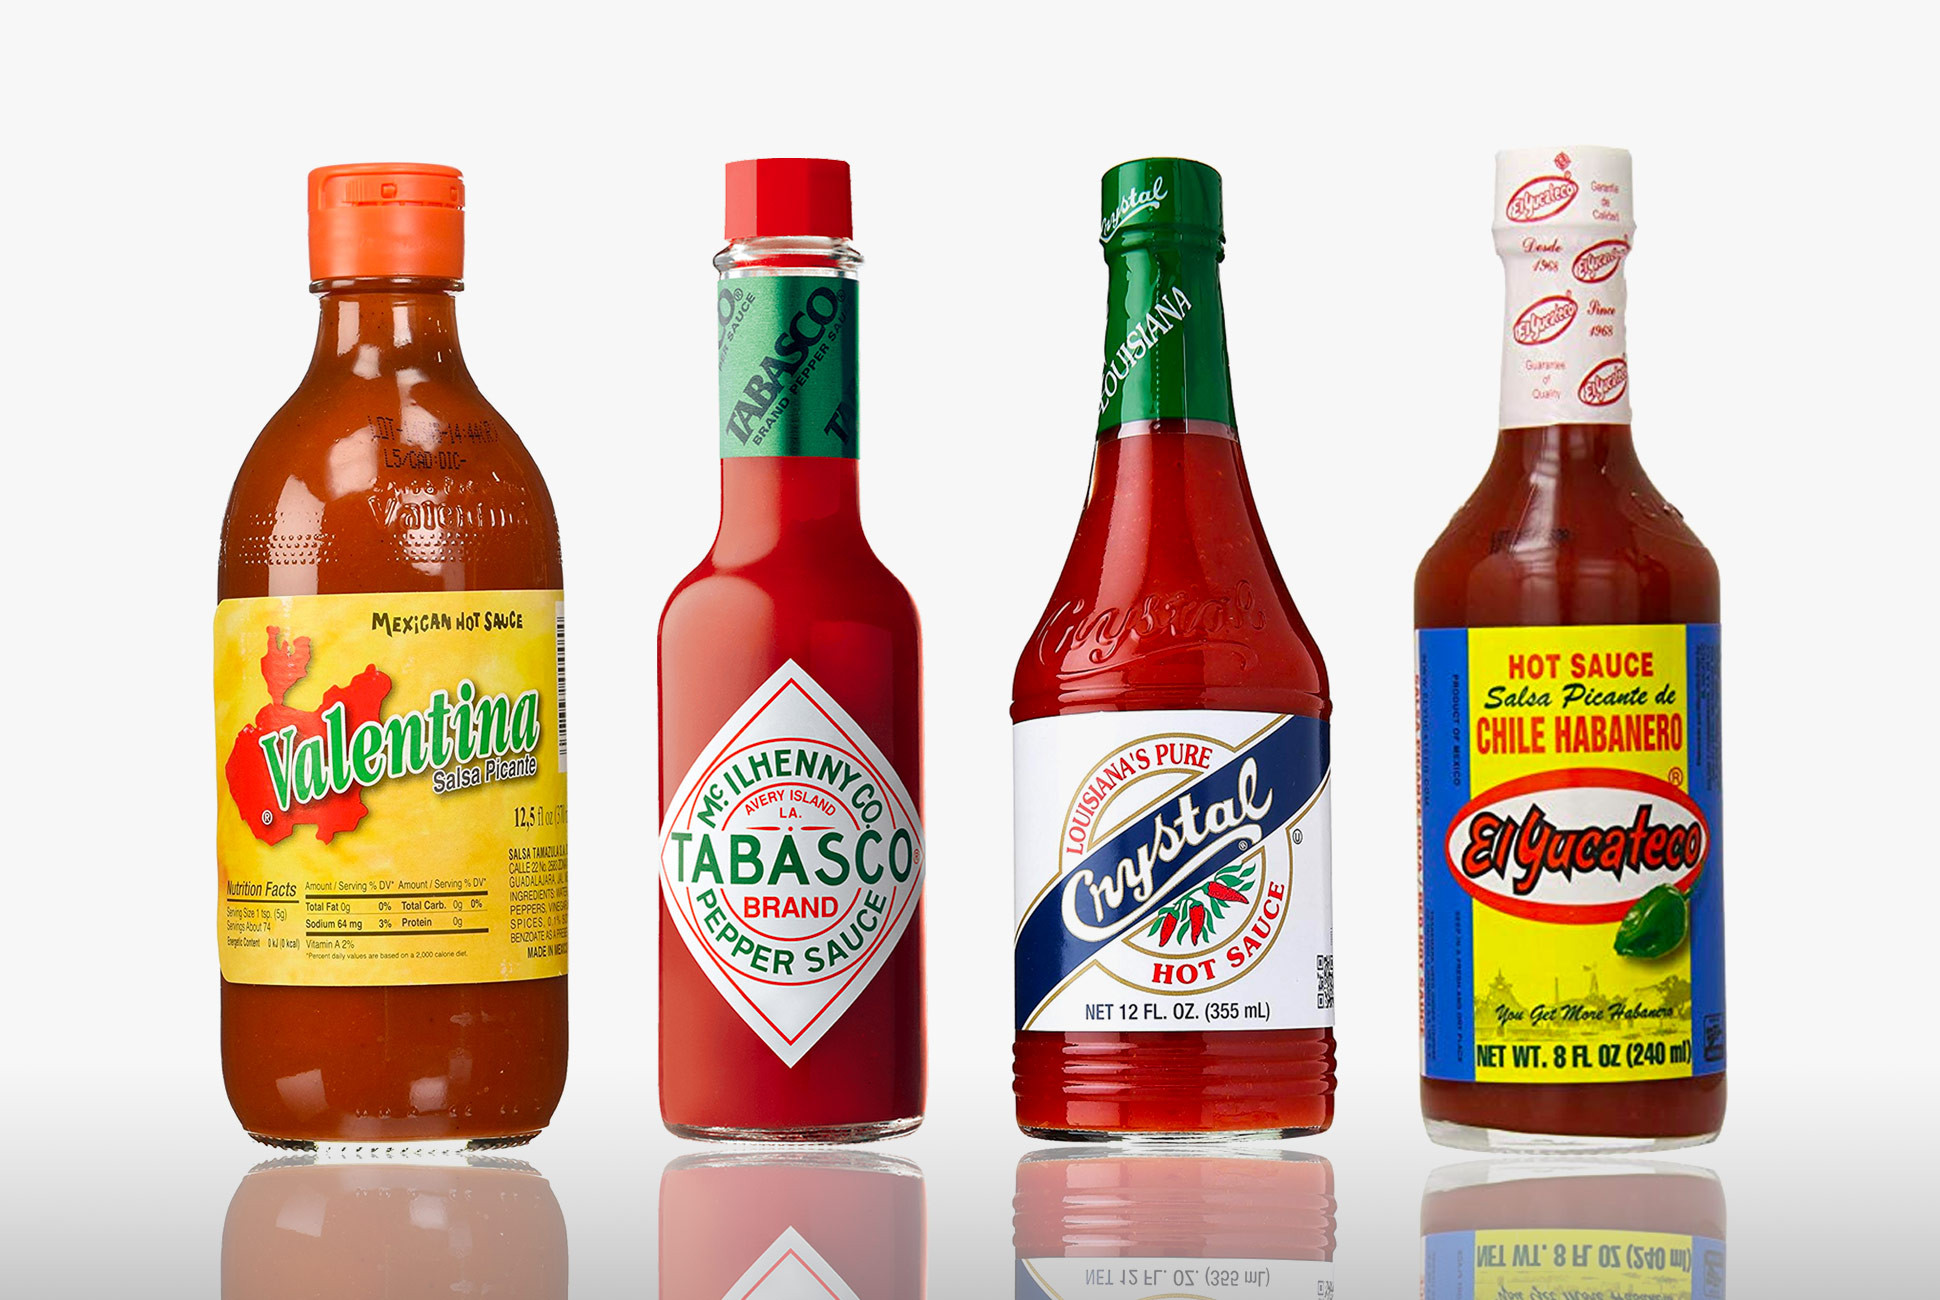 Best Hot Sauces  The Best Hot Sauce You Can Buy According to 9 Pro Chefs